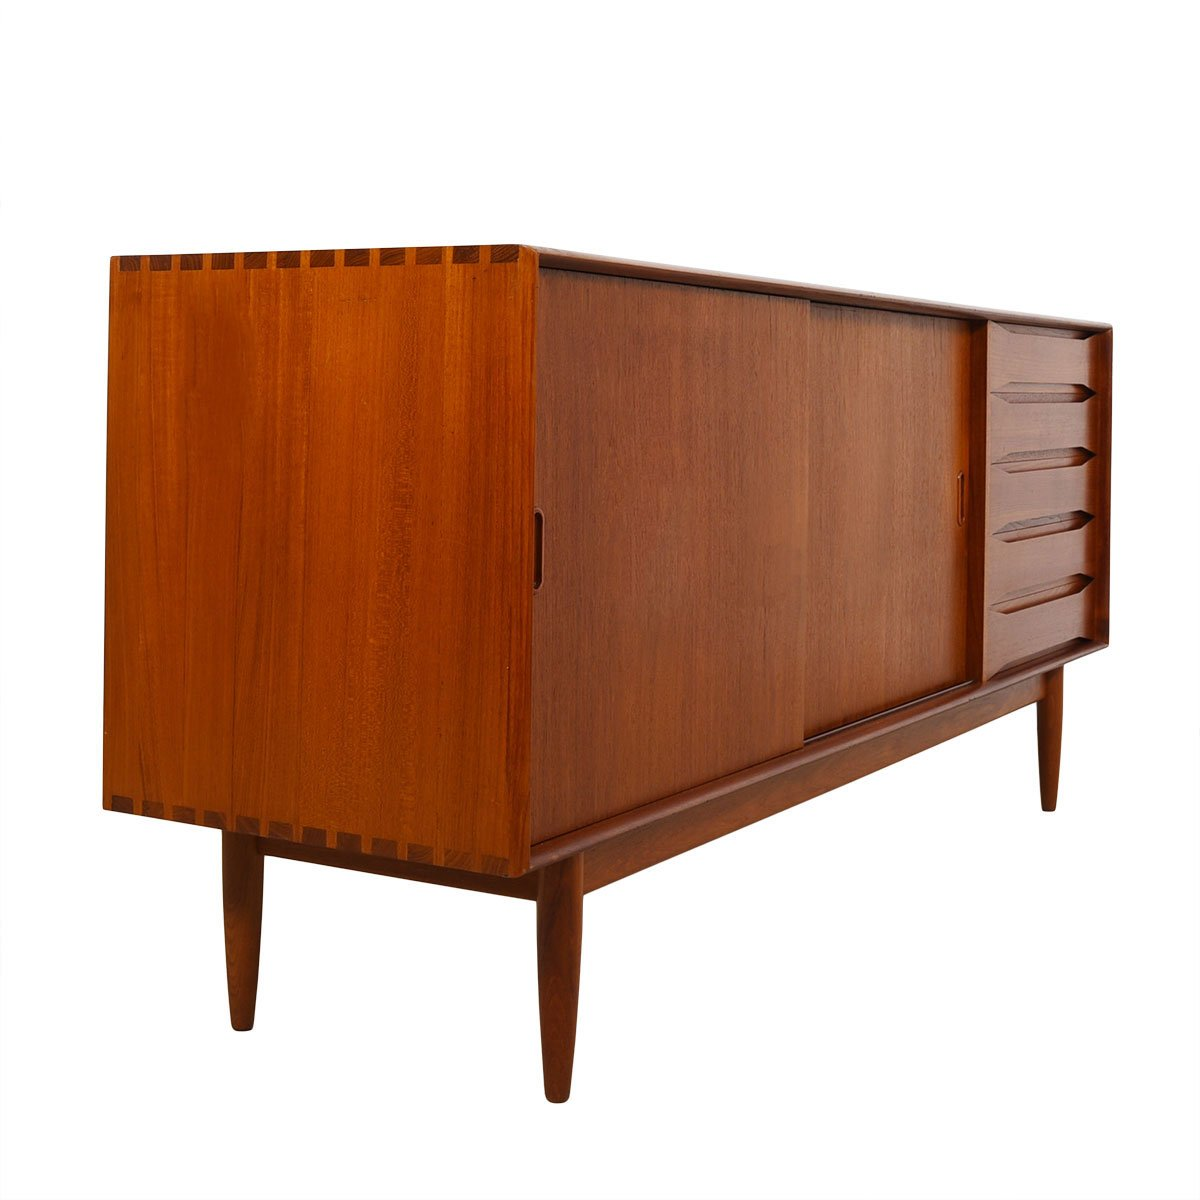 Rare Johannes Aasbjerg Danish Room Divider / Sideboard + Display Top in Solid-Teak